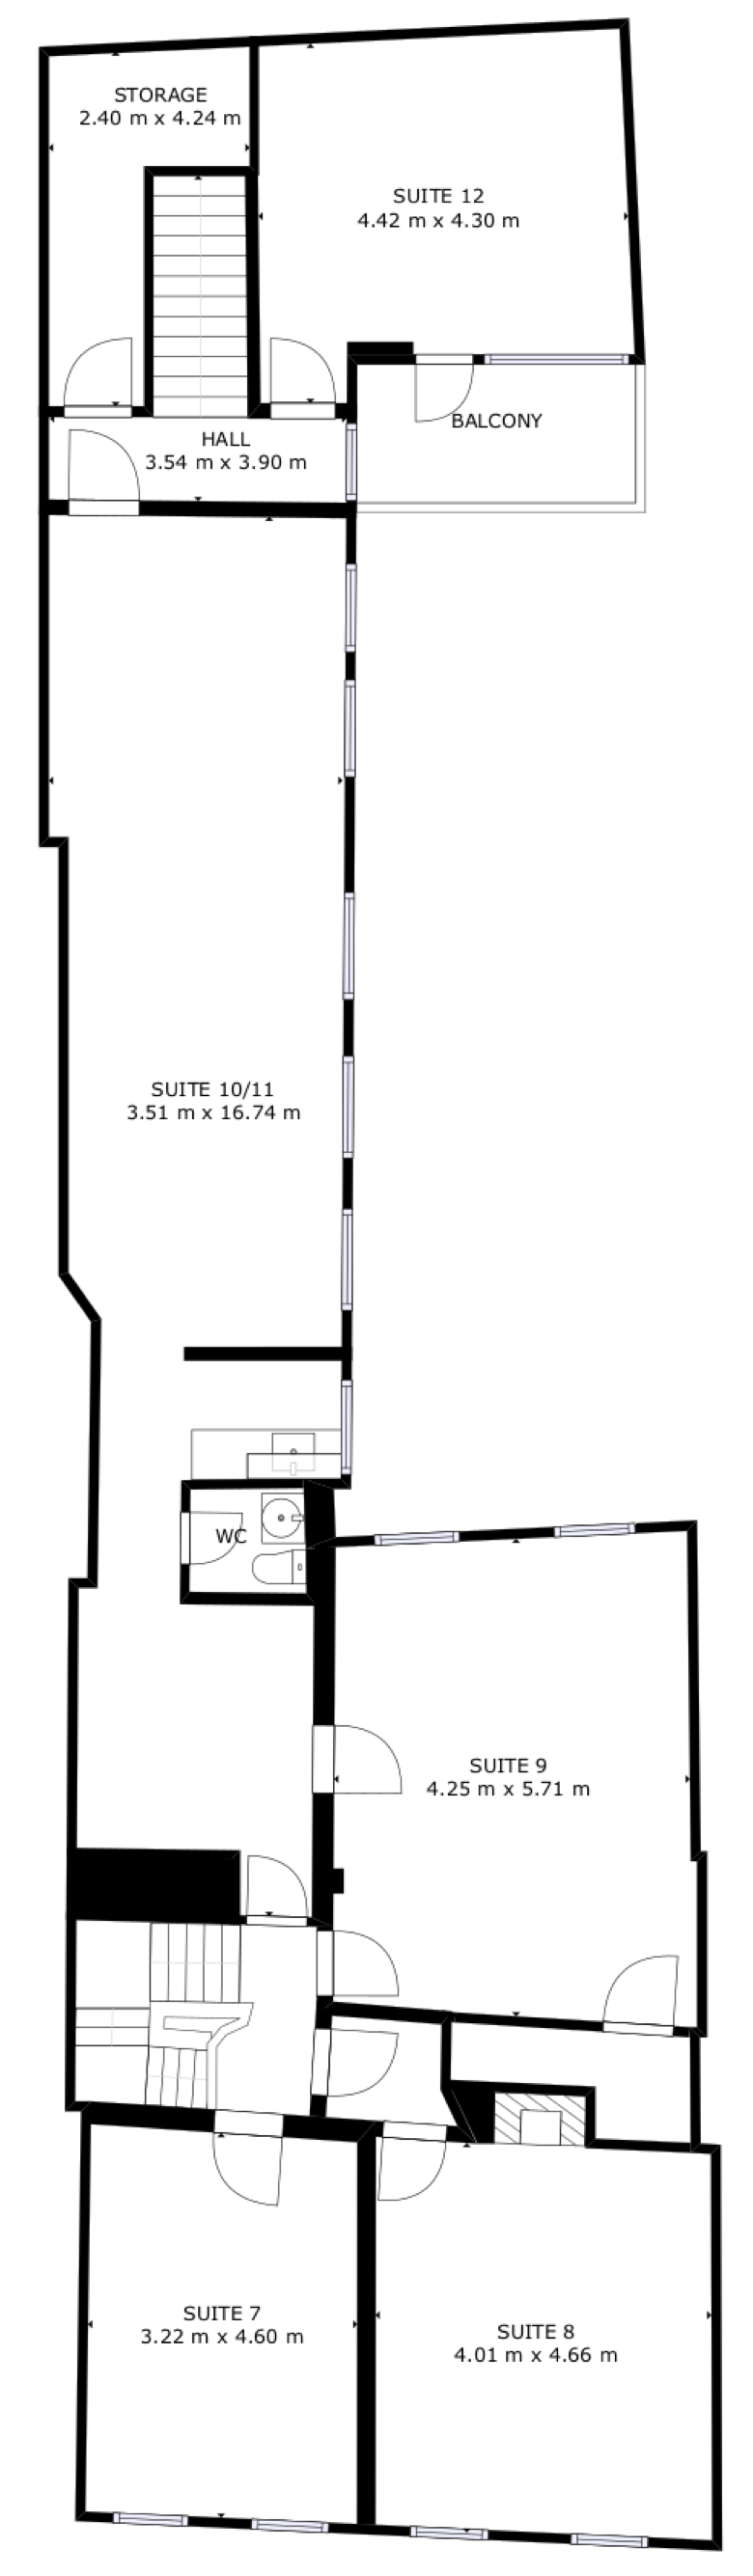 First floor plan and layout of serviced office suites available at St Albans business centre, Censeo House